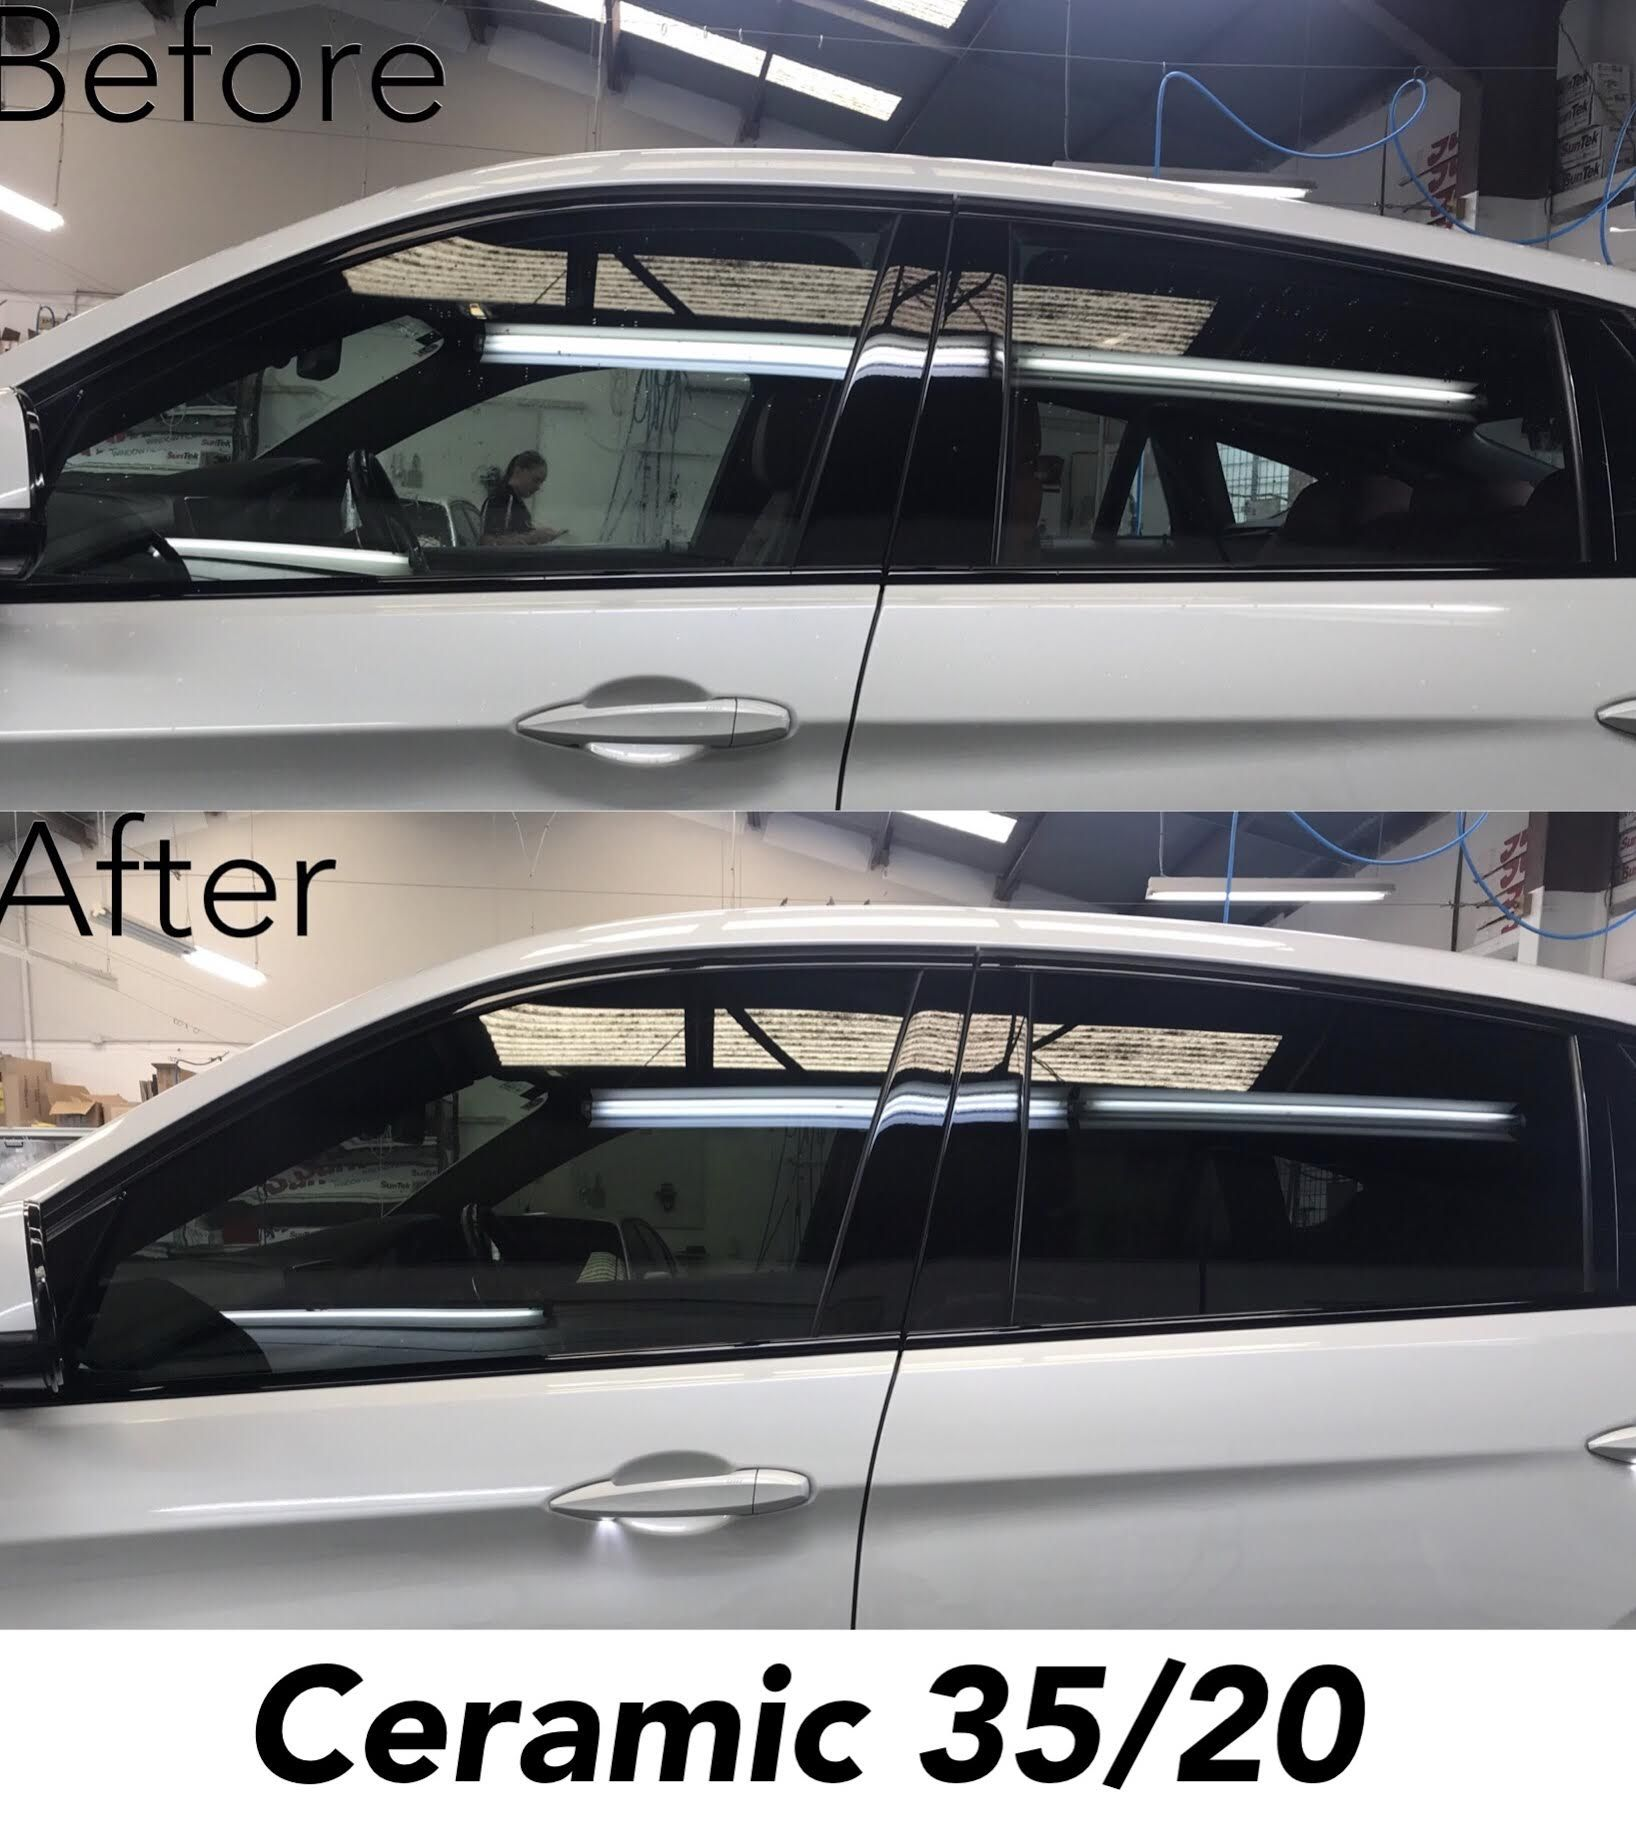 3m Ceramic Window Tint 35 20 On Bmw X6 Before And After Photos Tinted Windows Bmw X6 Tints